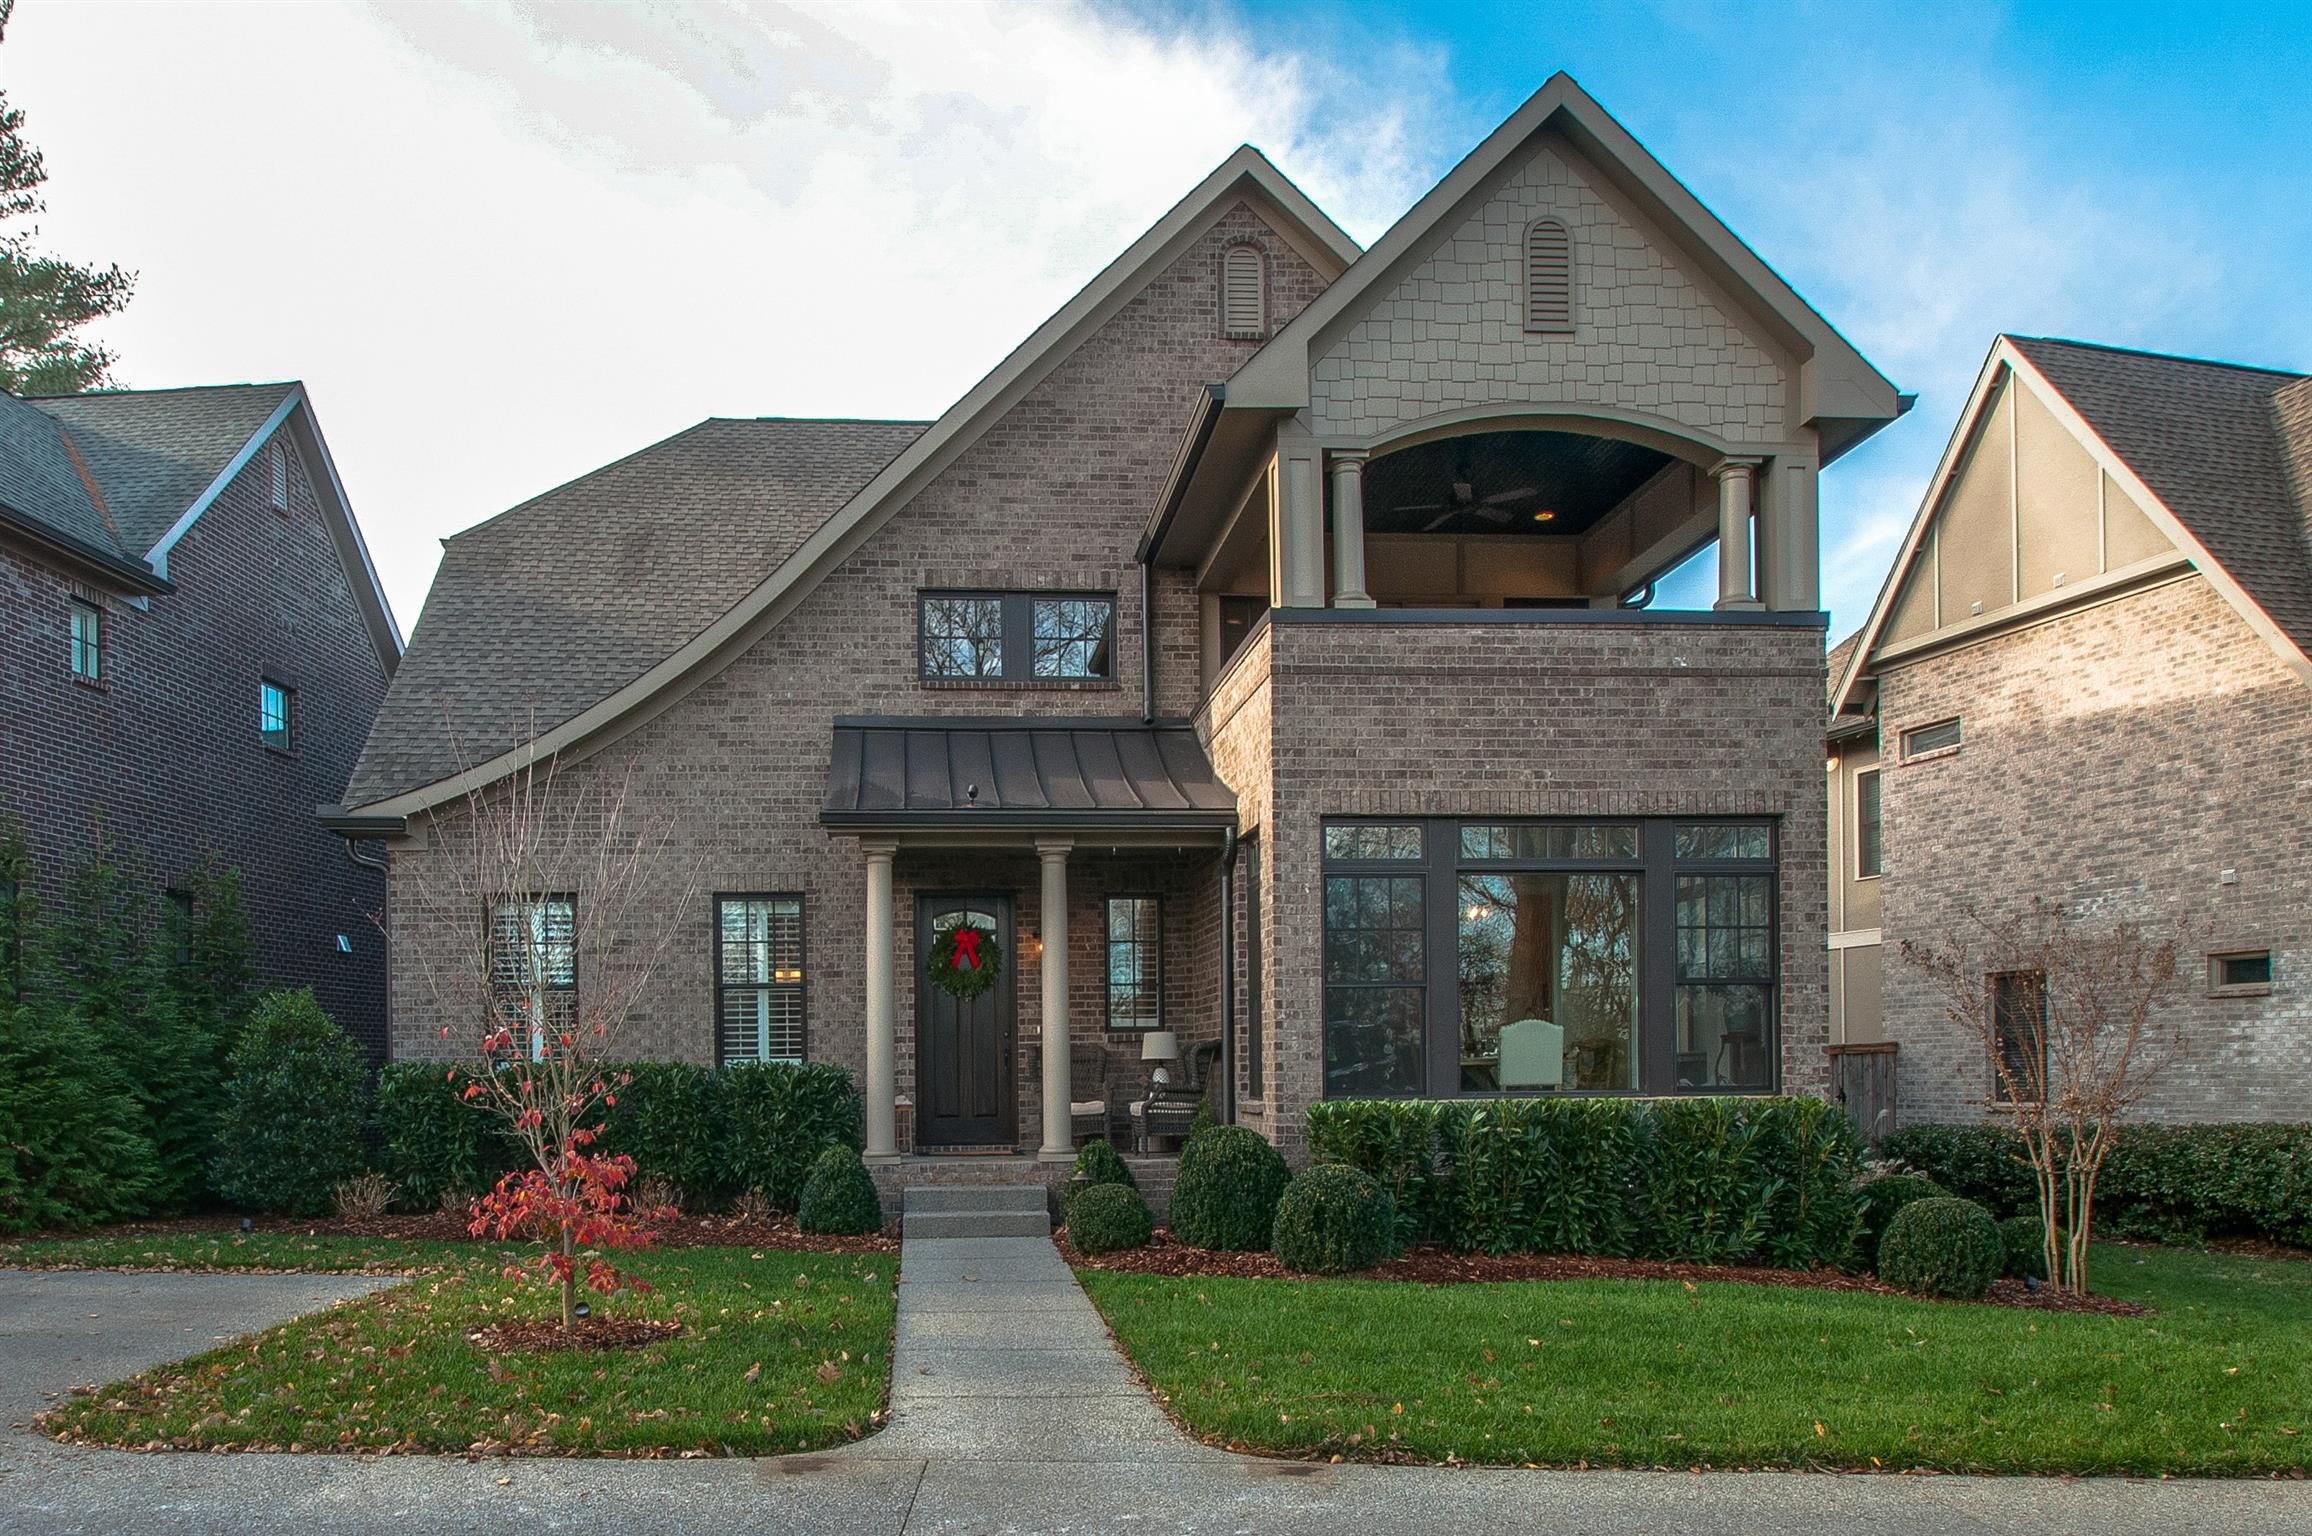 Great house for entertaining in desirable Belle Meade Highlands! Easy walkability to restaurants and shops in Belle Meade, 10 ft ceilings, 2 Car Garage, and Fireplace in Master & Den. Over 150k added in outdoor living entertainment area which includes a year round screened porch with fireplace.